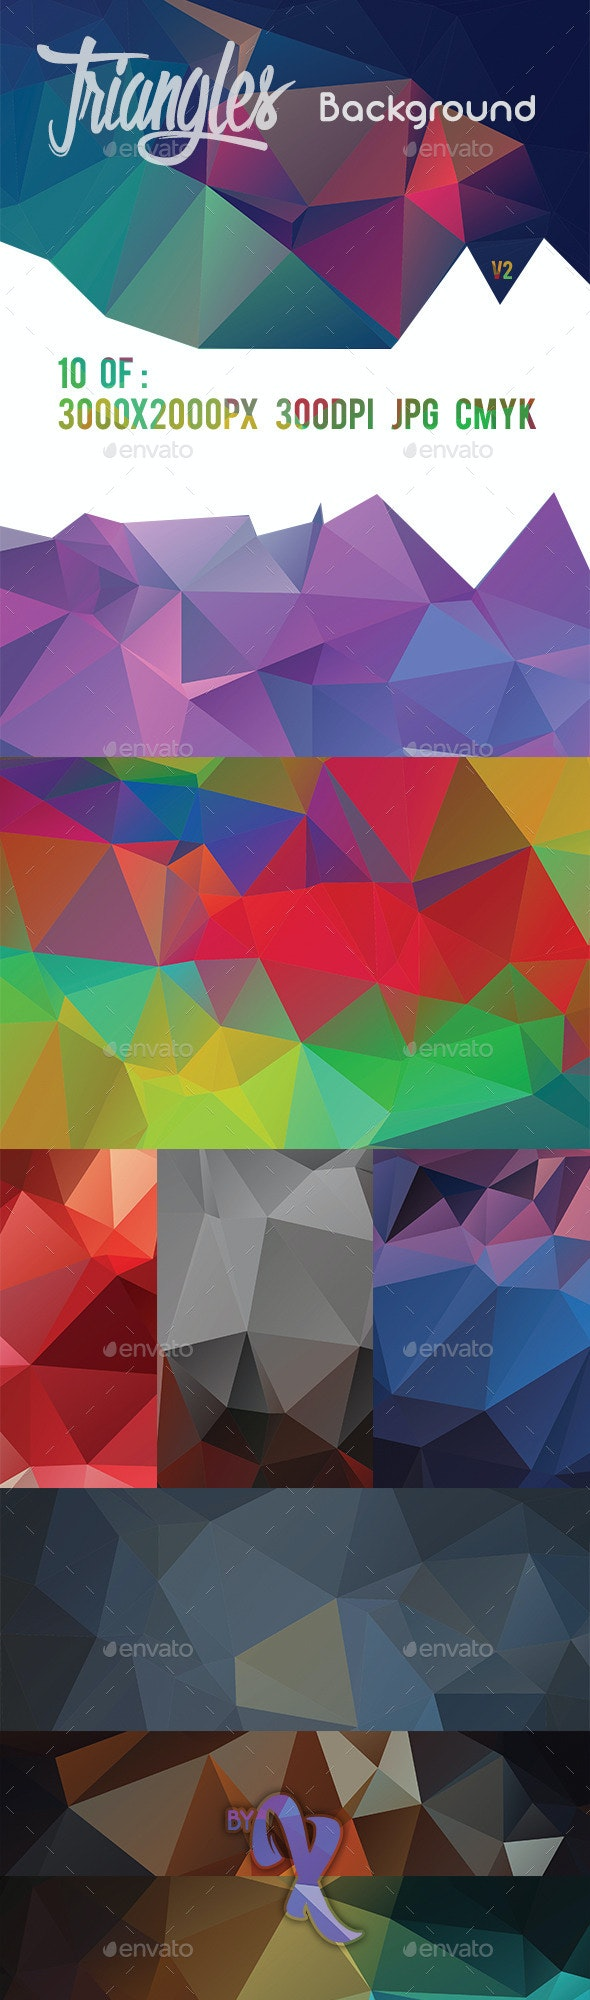 10 Triangles Background V2 - Abstract Backgrounds